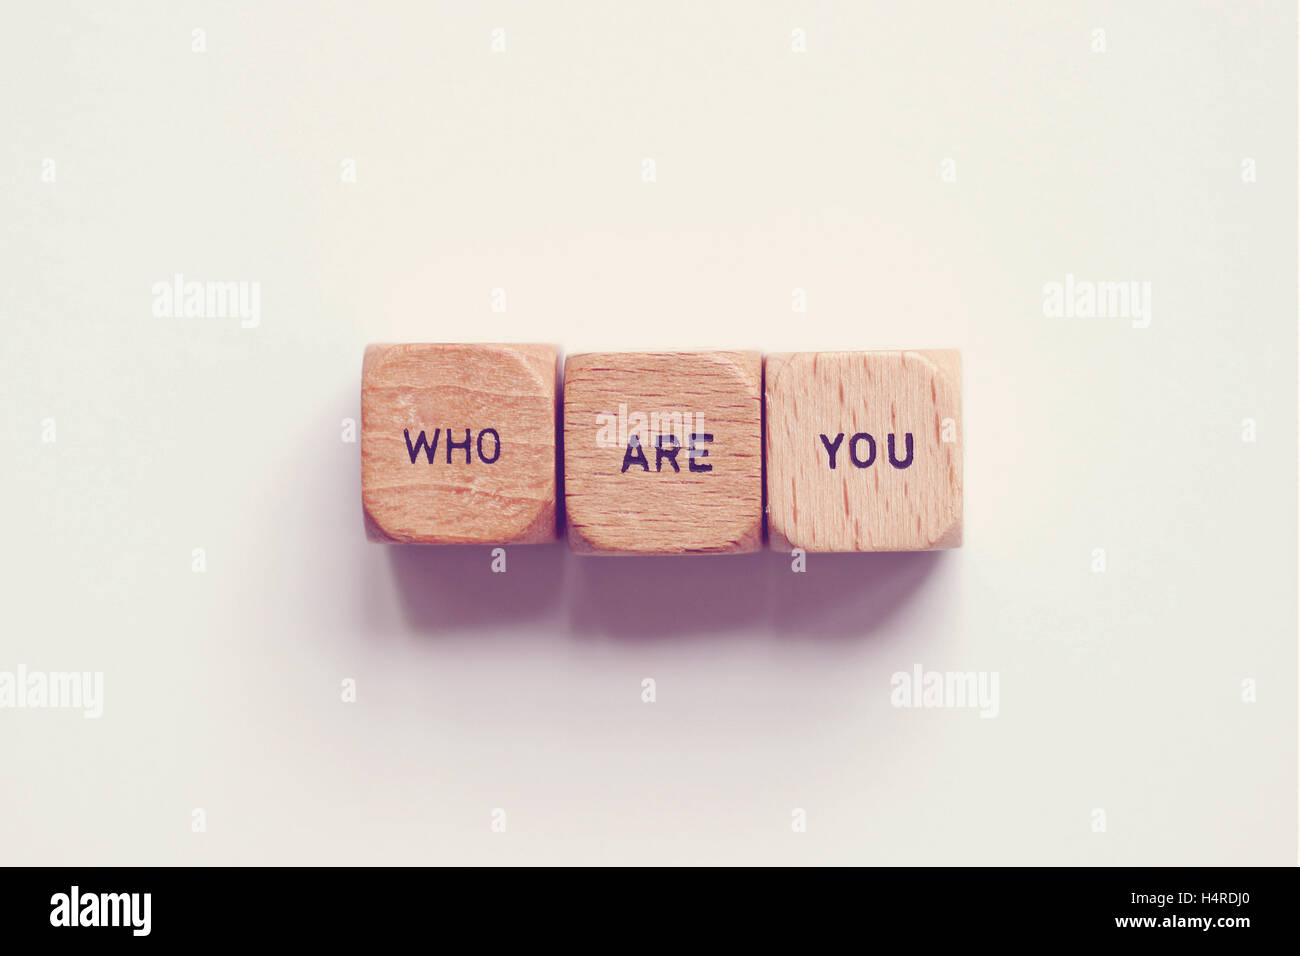 'who are you?' printed on dice - Stock Image